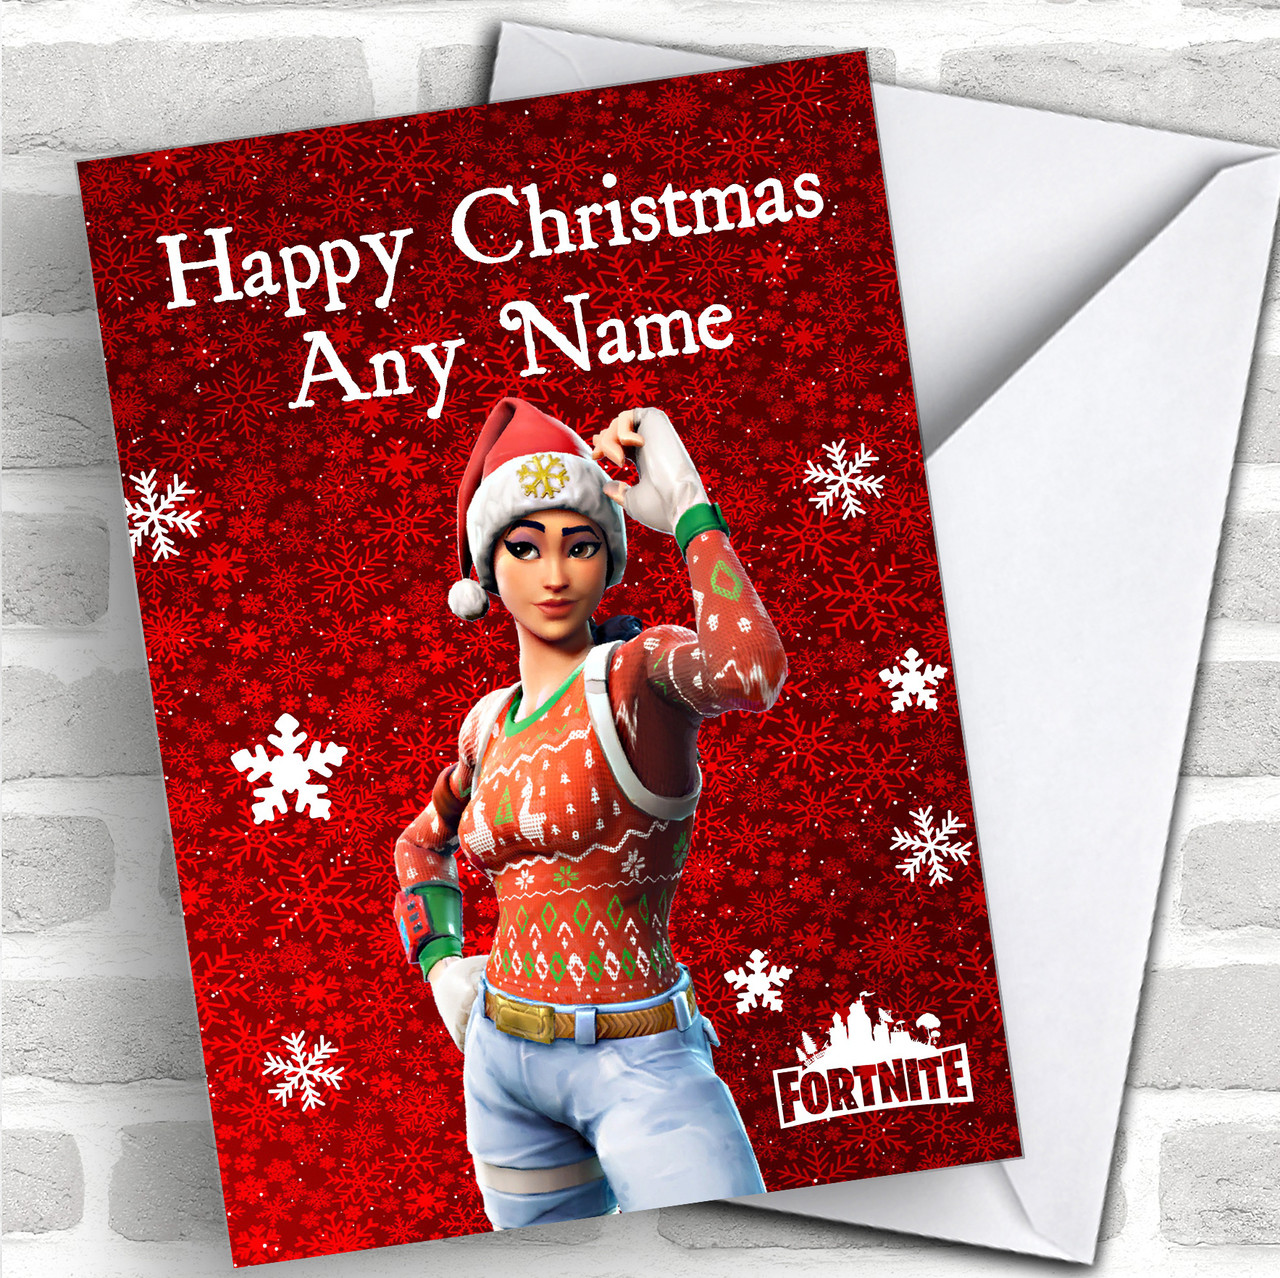 Red Fortnite Game Personalized Children\'s Christmas Card - Red Heart ...